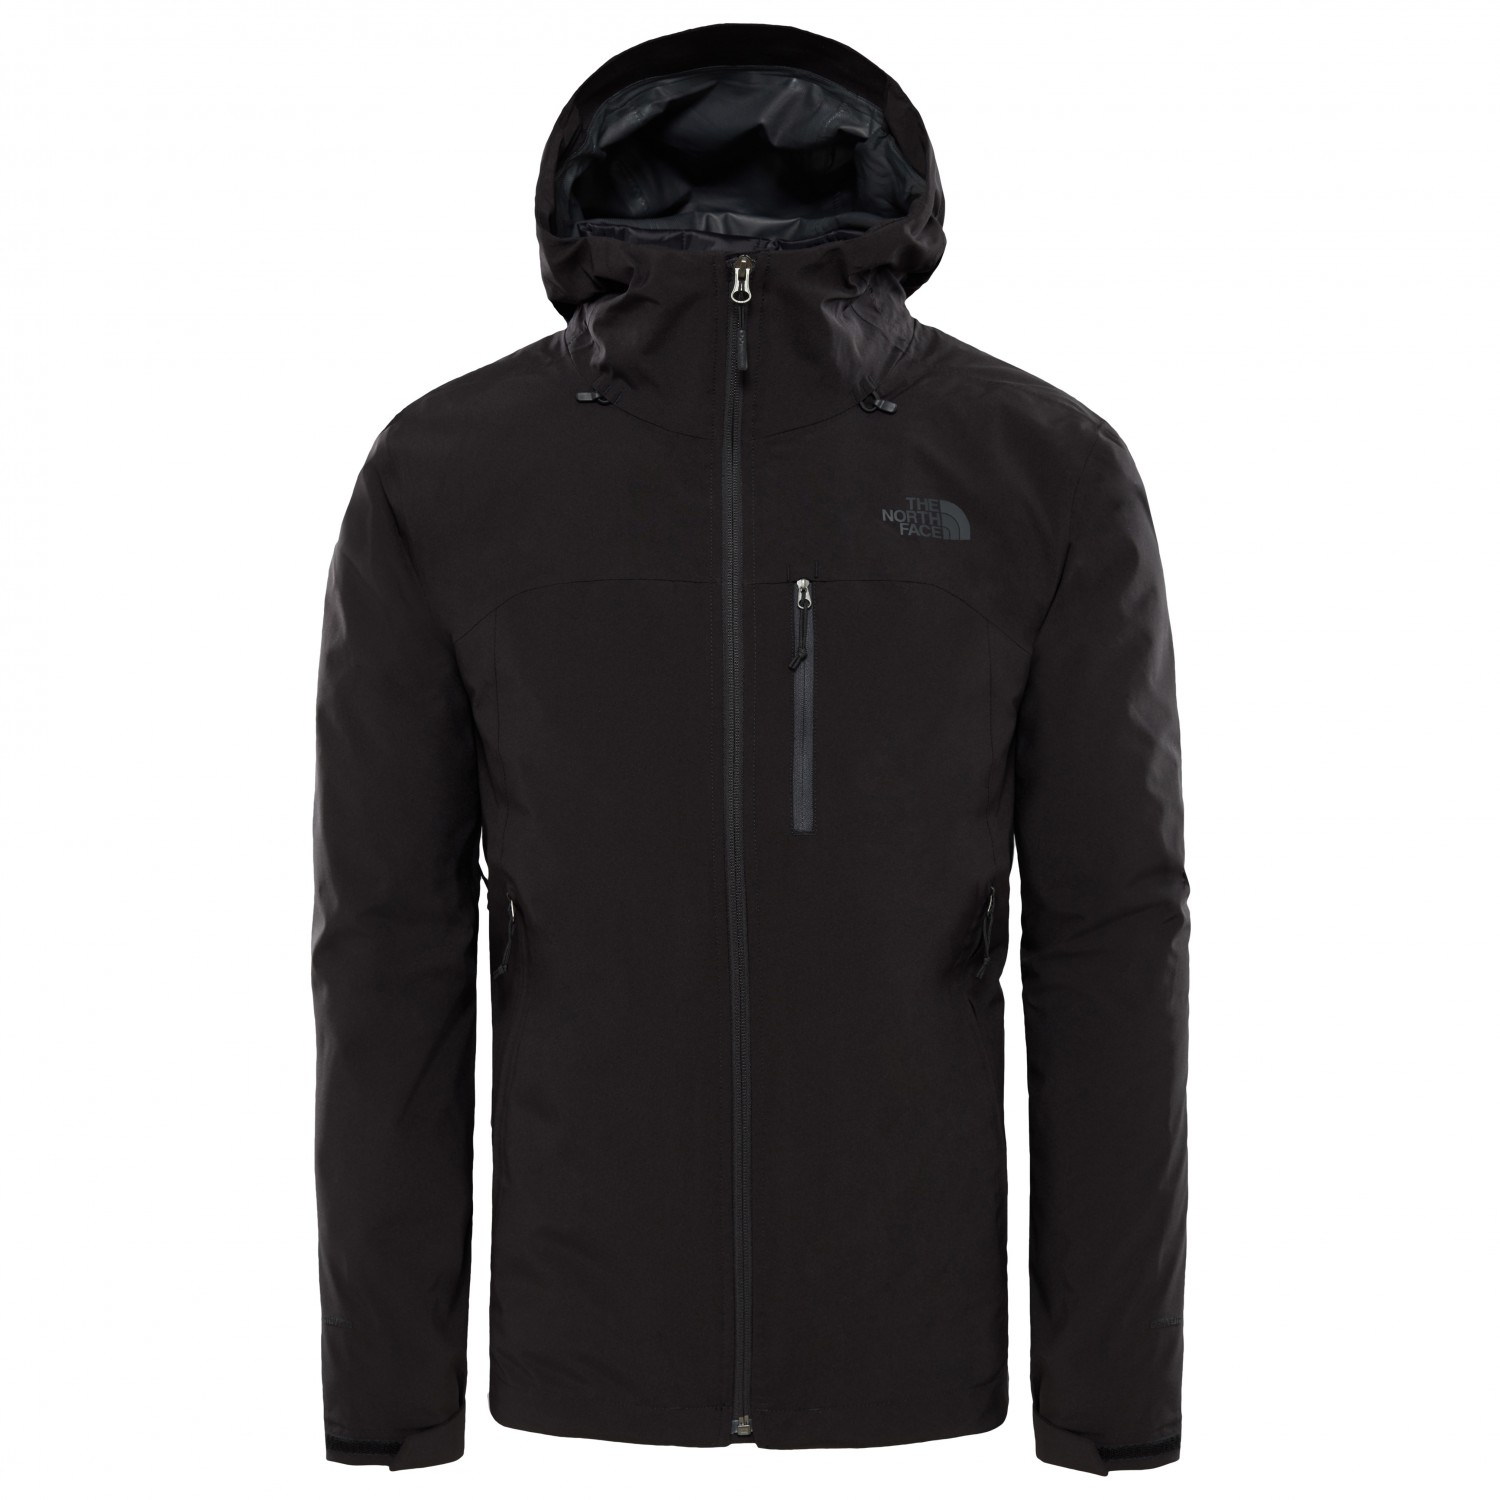 1e851582ccdae3 The North Face Thermoball Triclimate Jacket - 3-In-1 Jacket Men's ...